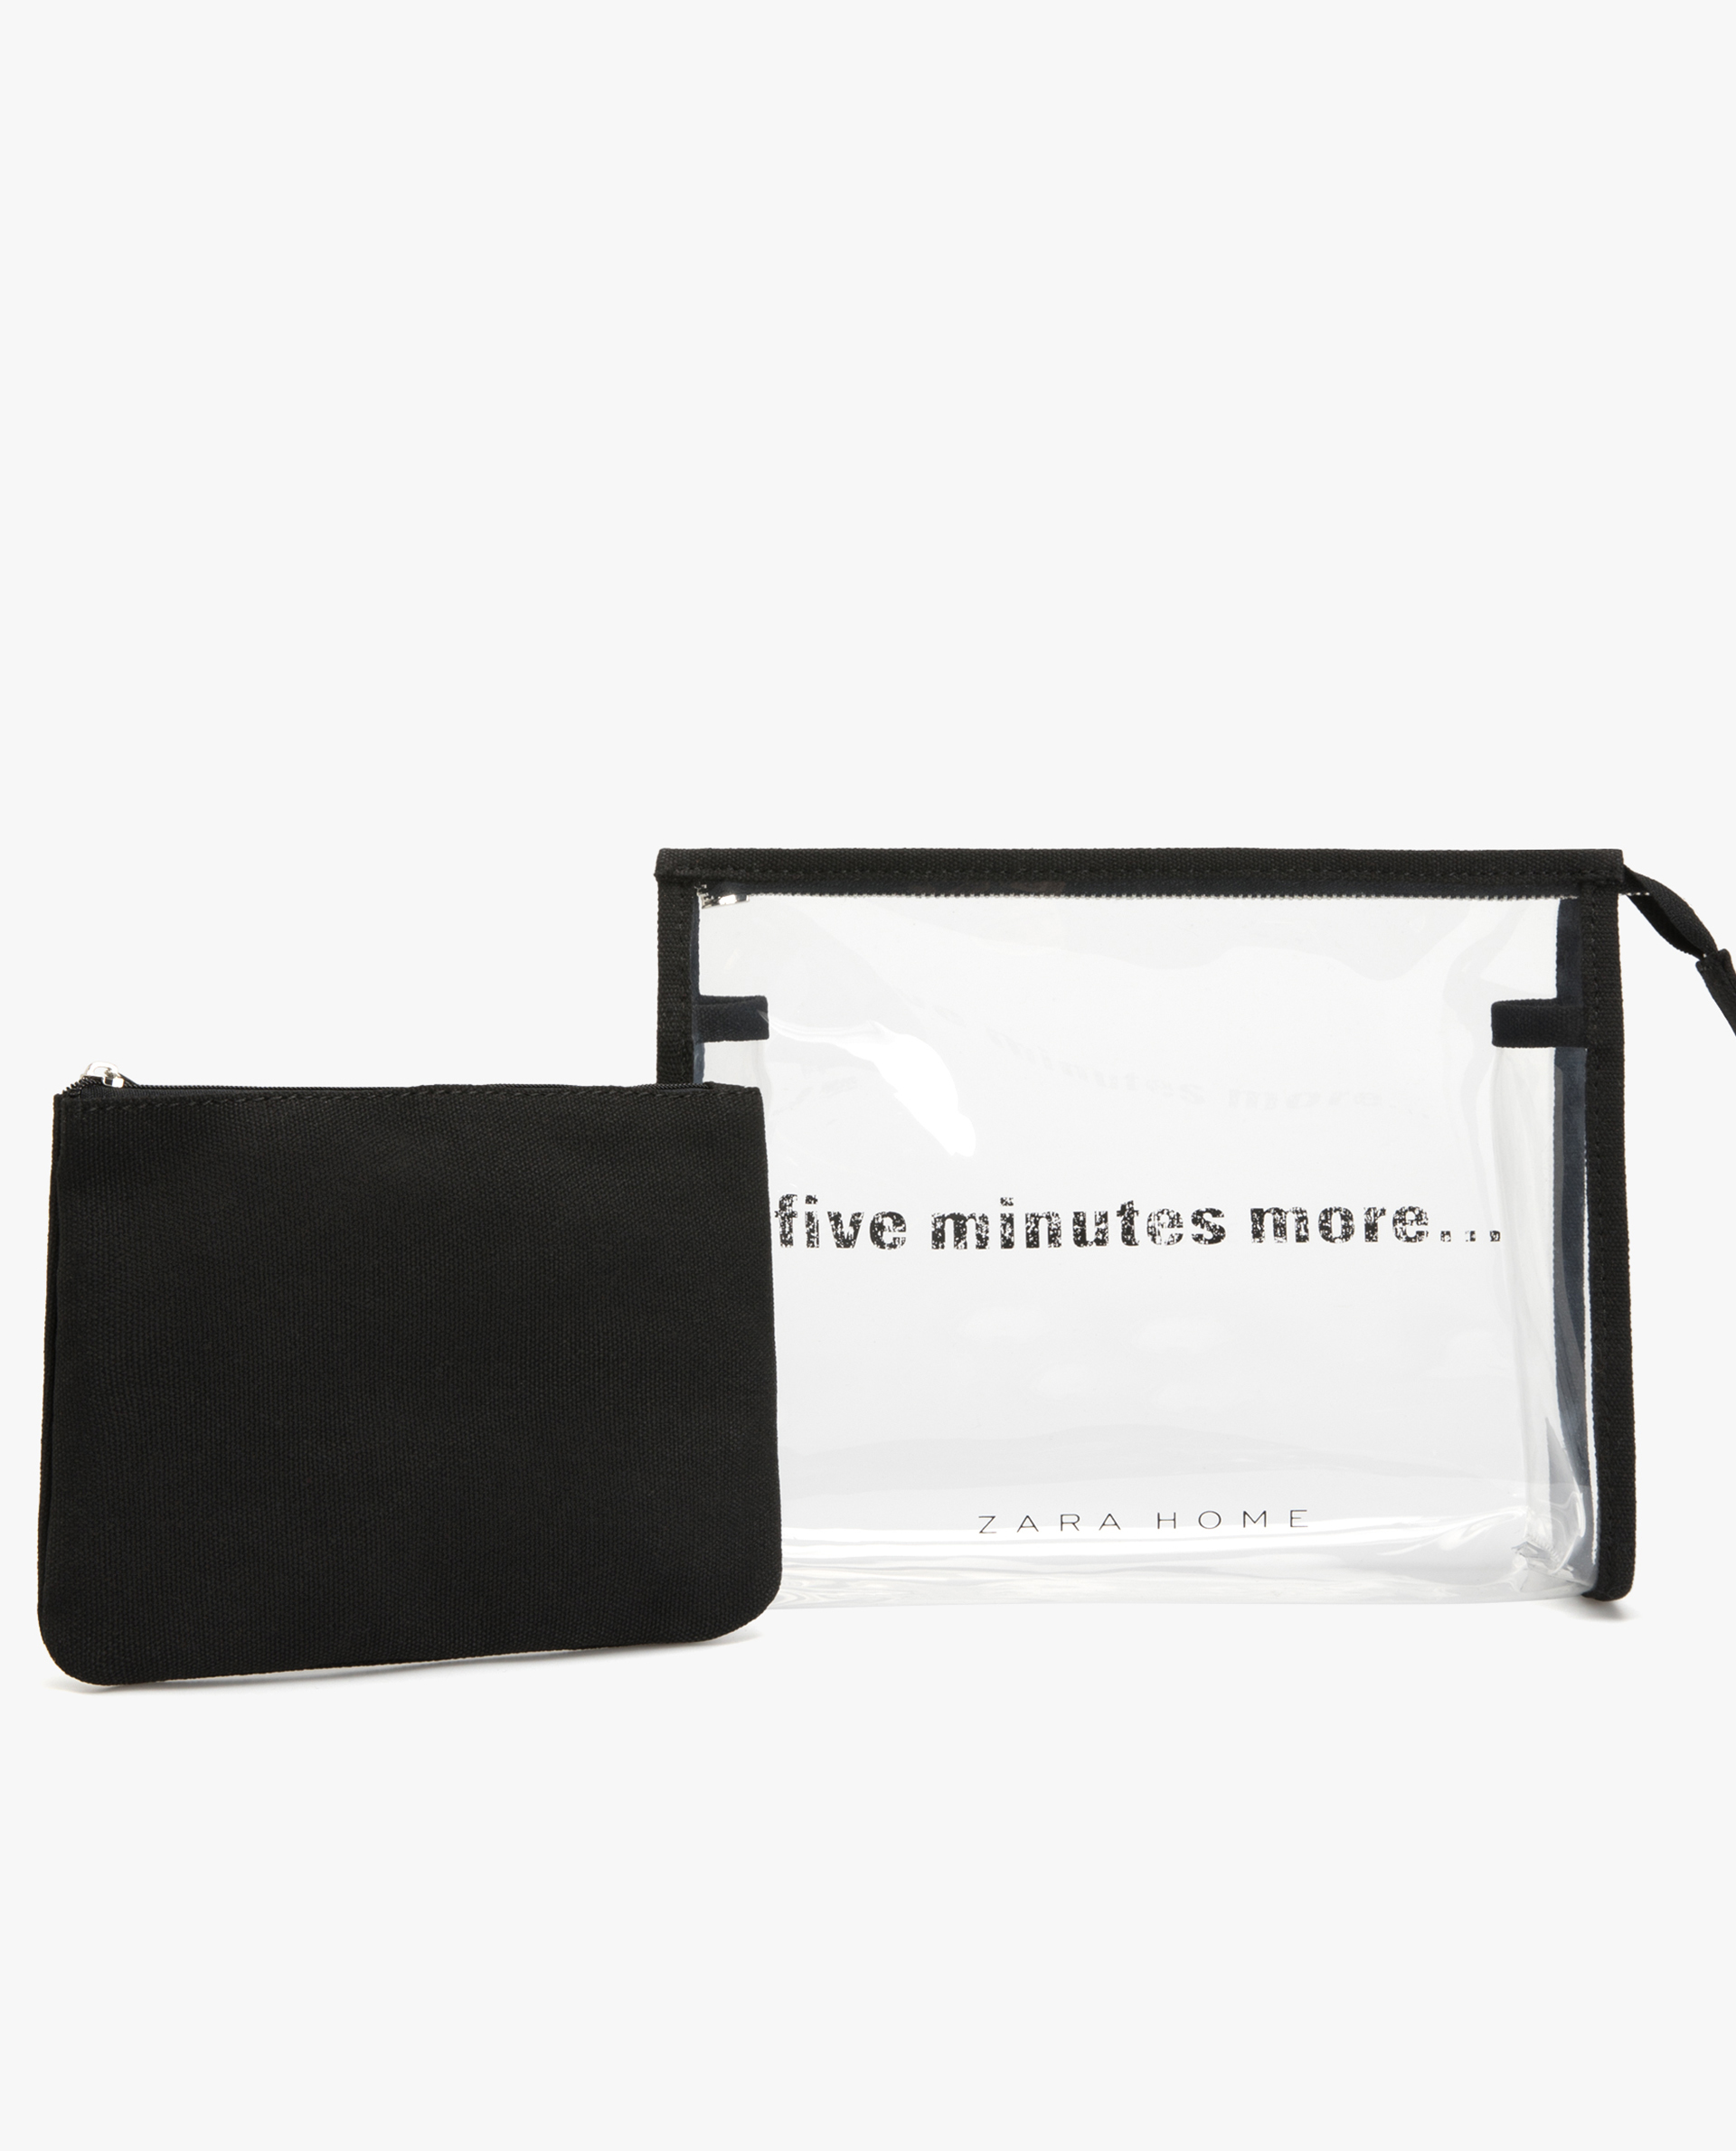 a62cd11deb9962 TRANSPARENT TOILETRY BAG - ACCESSORIES - CLOTHING   FOOTWEAR ...